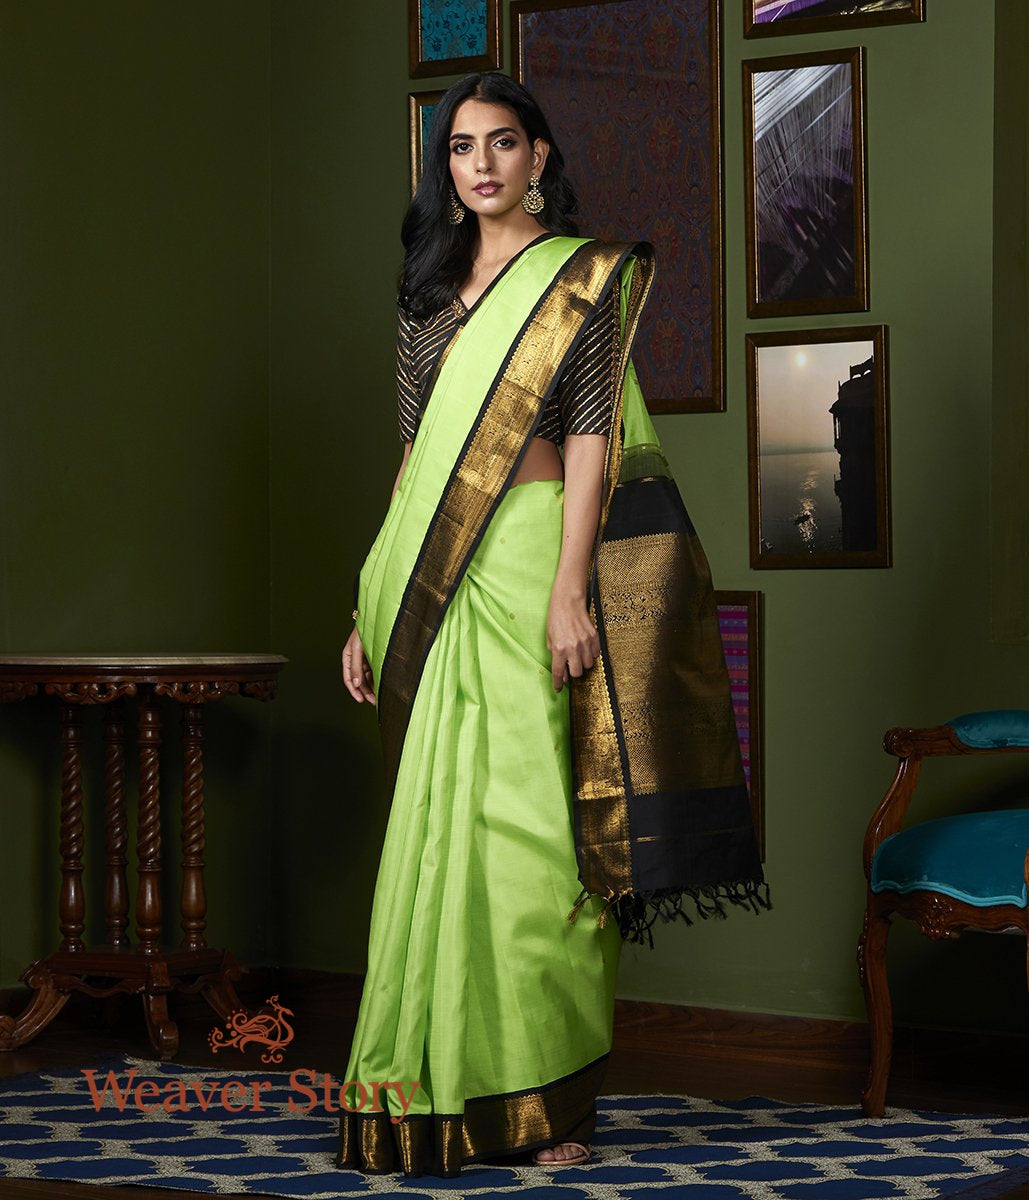 Handwoven Parrot Green Kanjivaram Silk Saree with Black Border